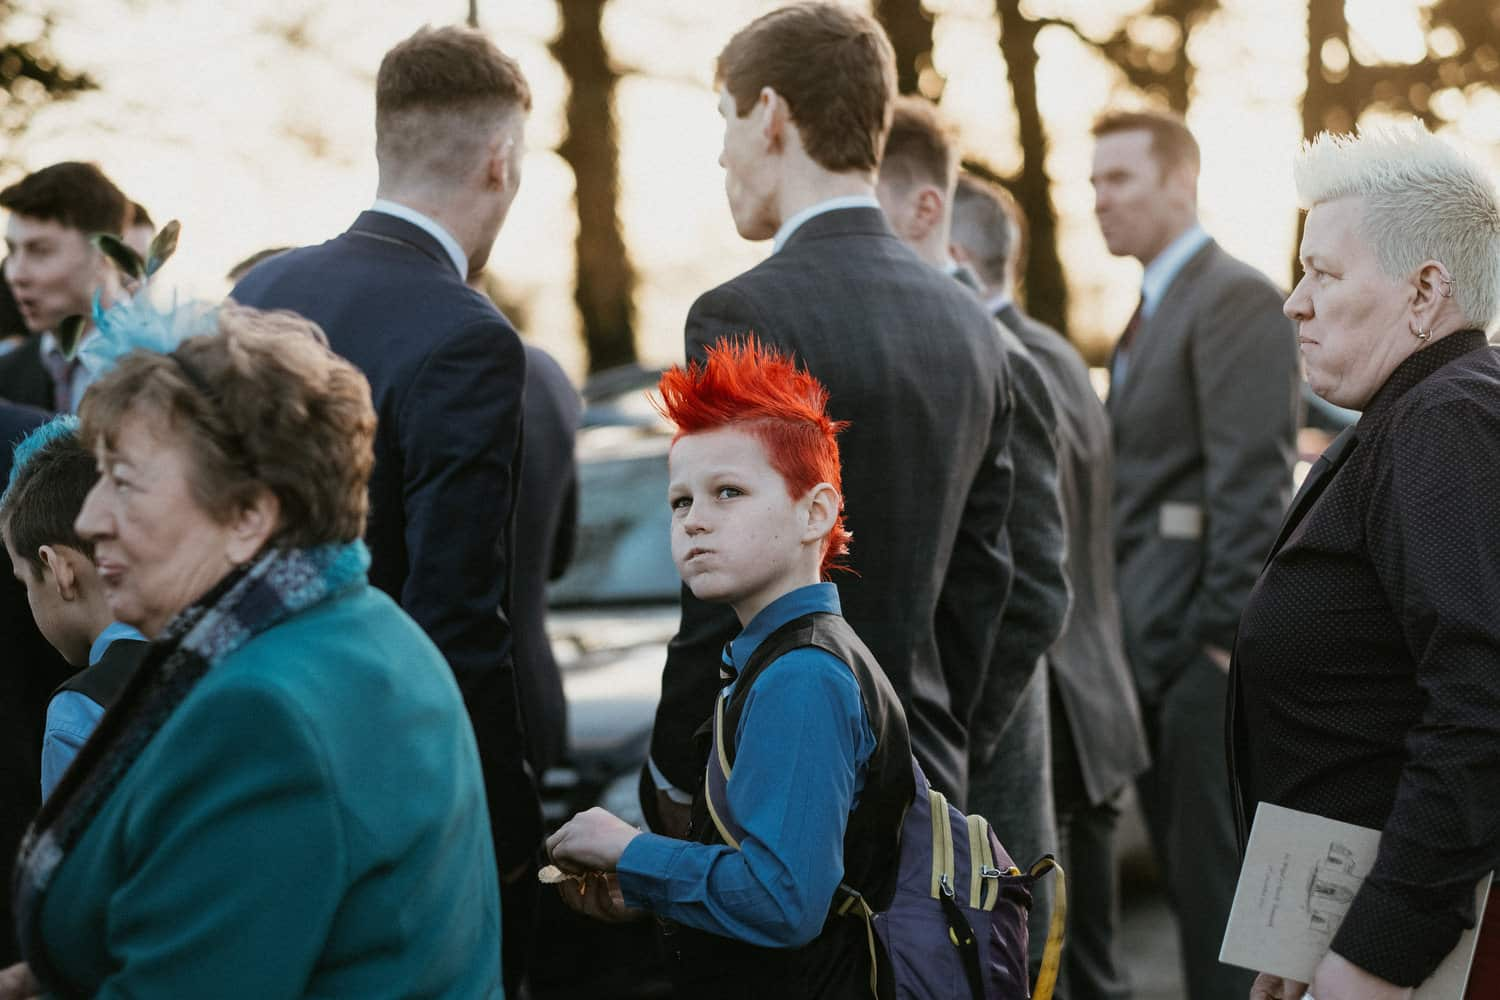 portrait of boy with red hair after wedding ceremony